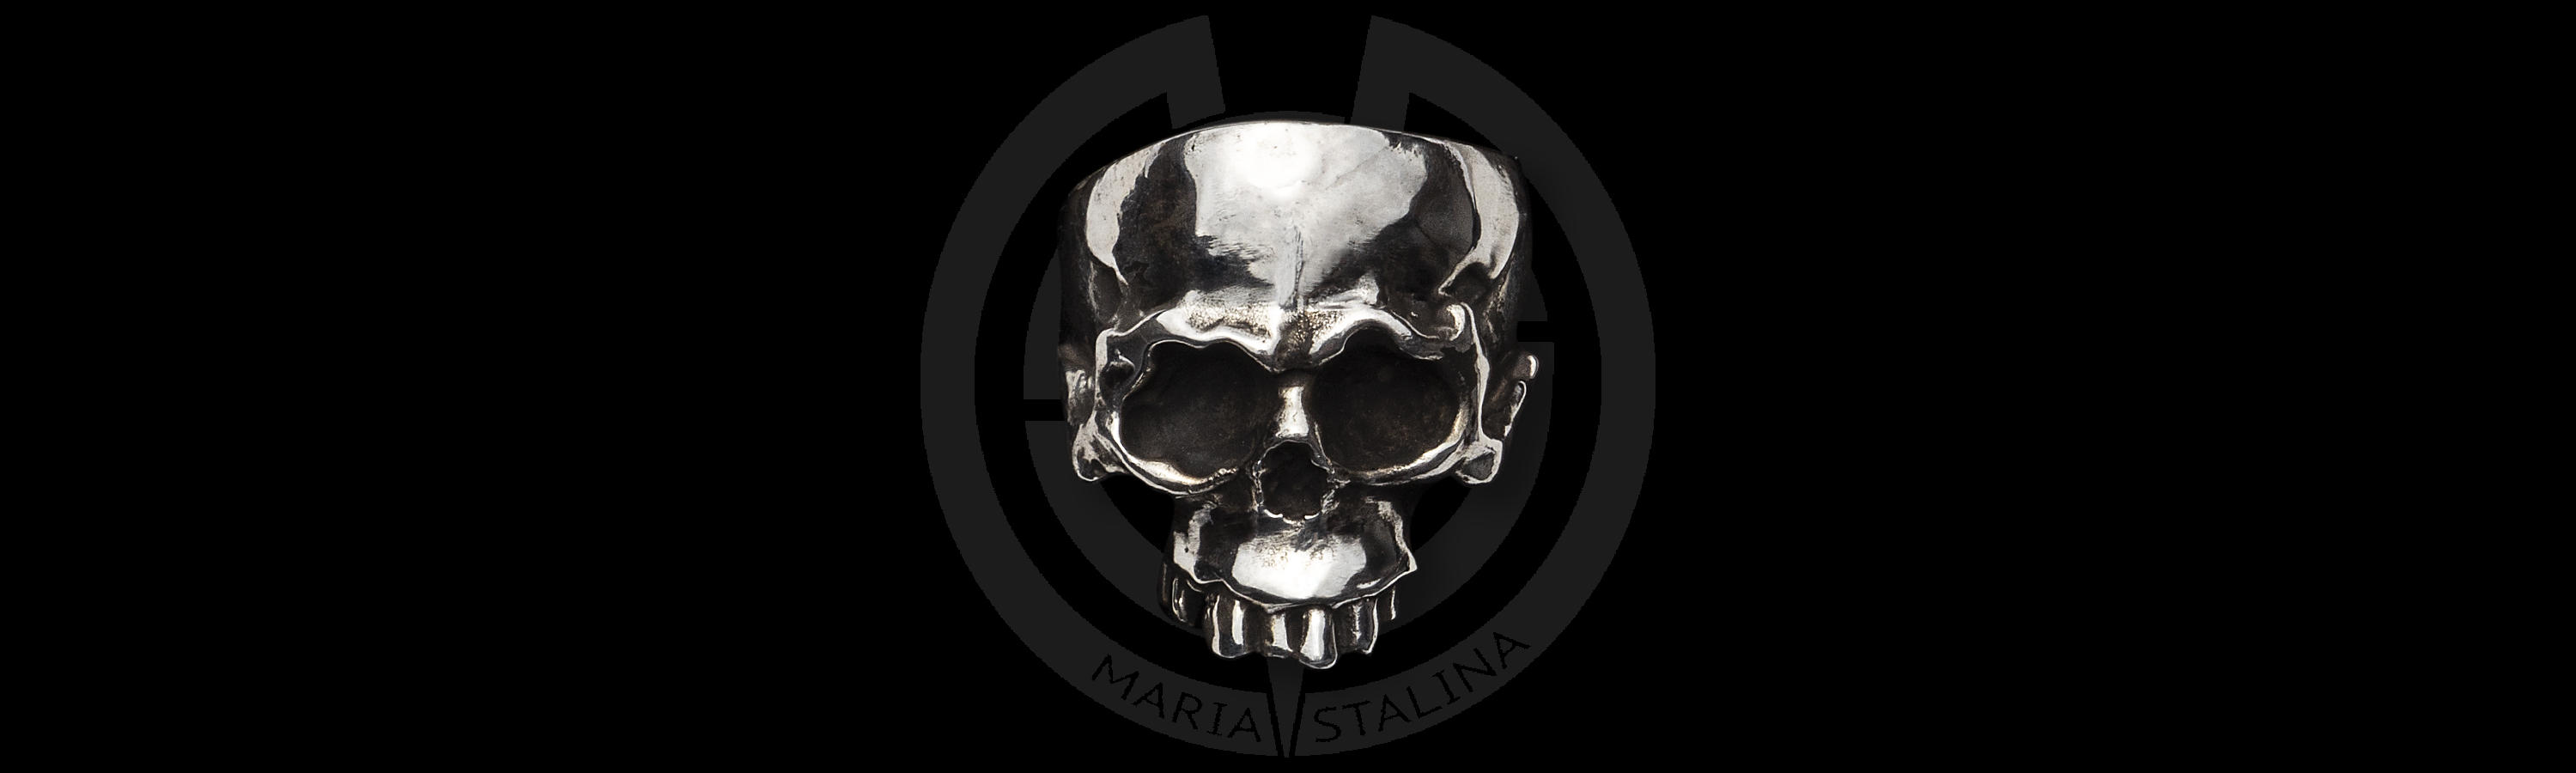 Men's metal ring Skull work by Hidetoshi Nakayama